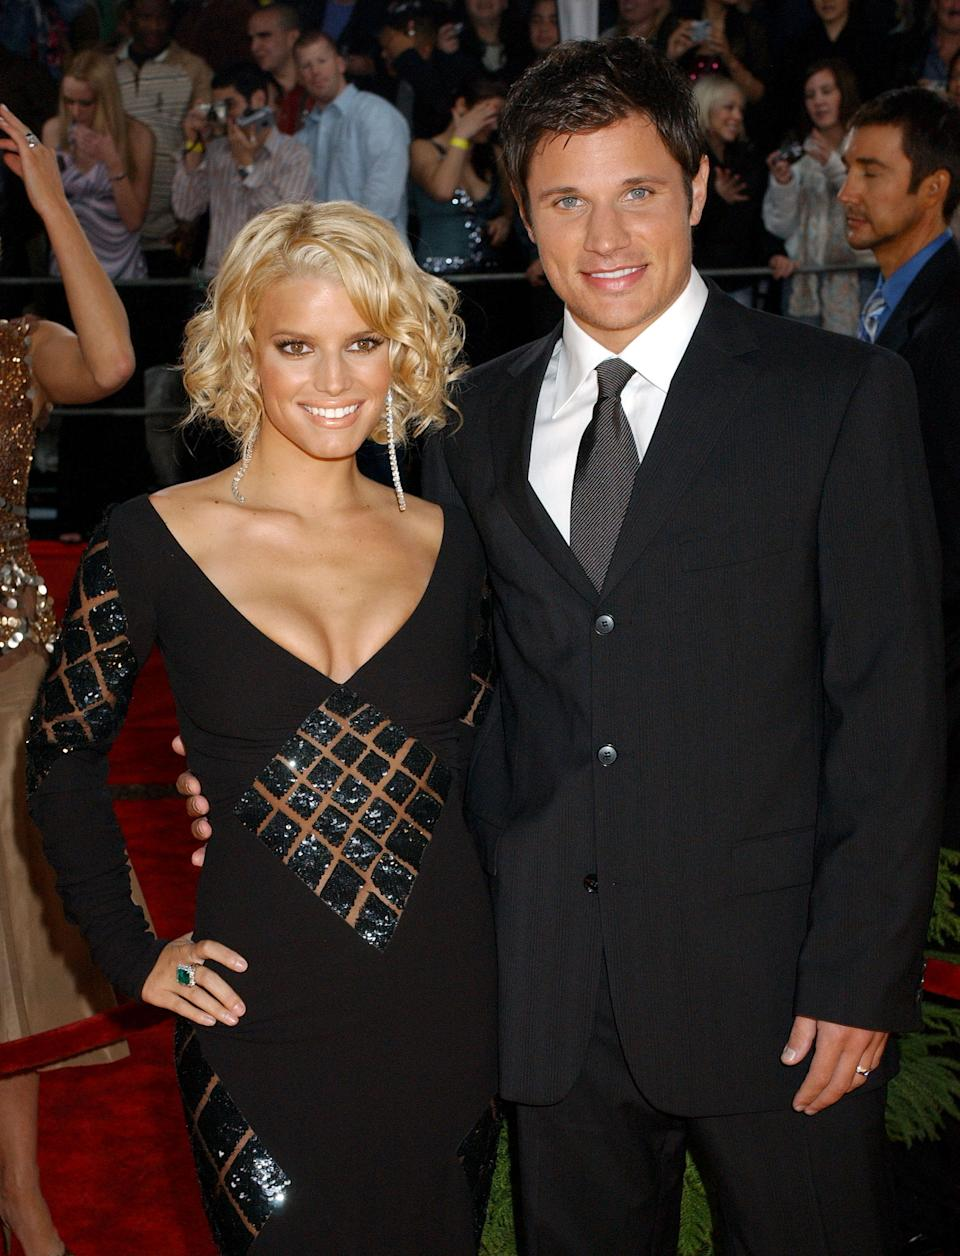 """<p>Simpson and Lachey's careers skyrocketed after the pair tied the knot in 2003. Their successful MTV reality show, """"The Newlyweds"""" spawned """"I Love Lucy"""" comparisons for the bubbly blonde and her boyband husband. The couple divorced in 2006. <em>(Image via Getty Images)</em></p>"""